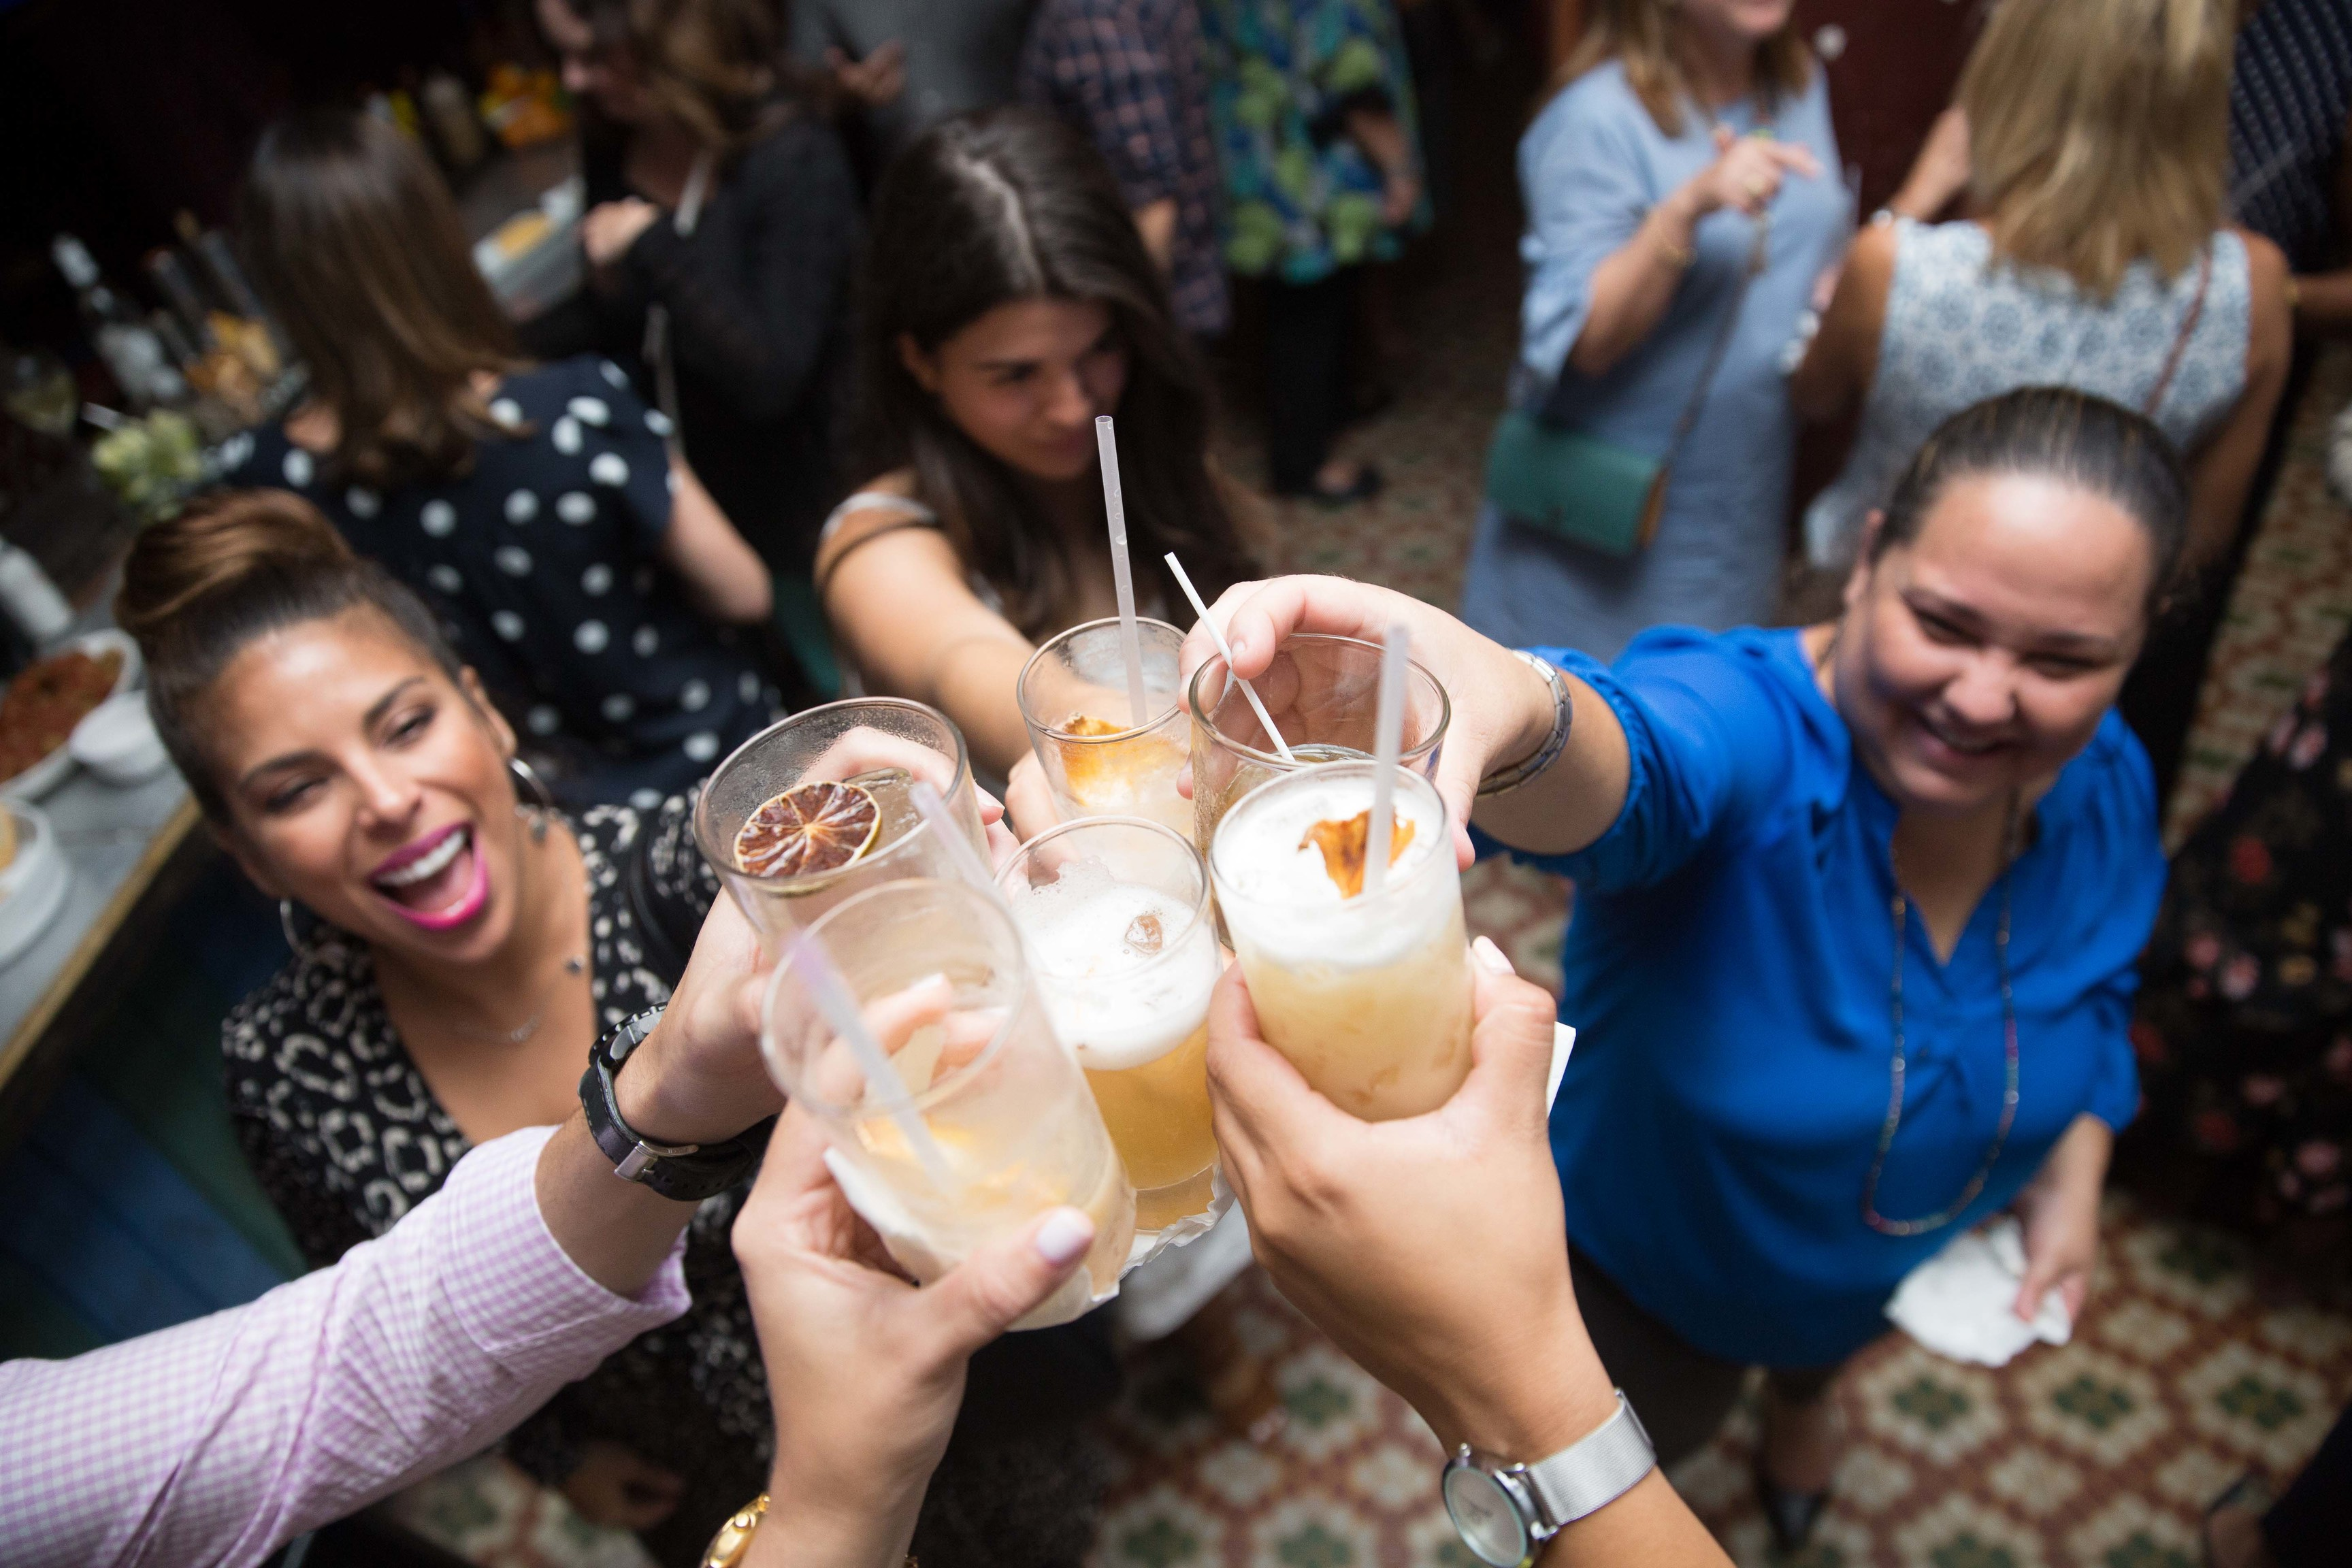 A group of friends toasts their drinks at a bar.